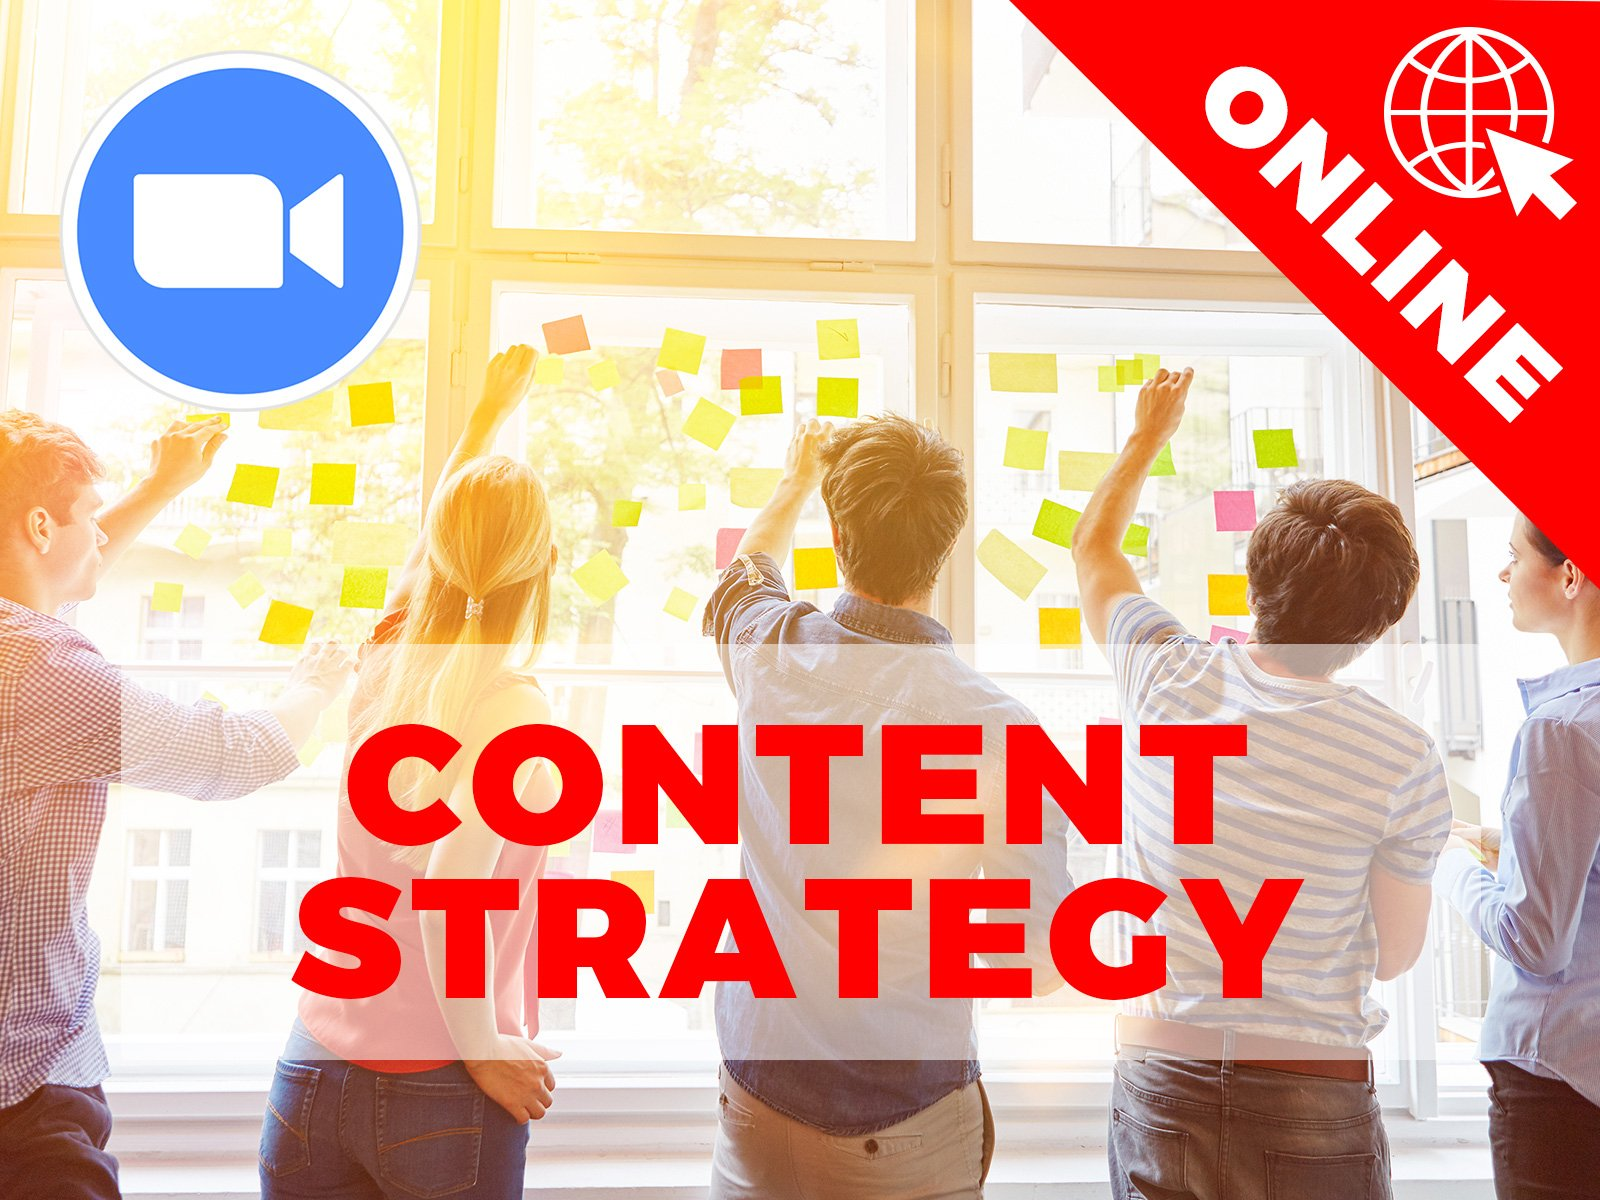 content-strategy-business-marketing-workshop-online